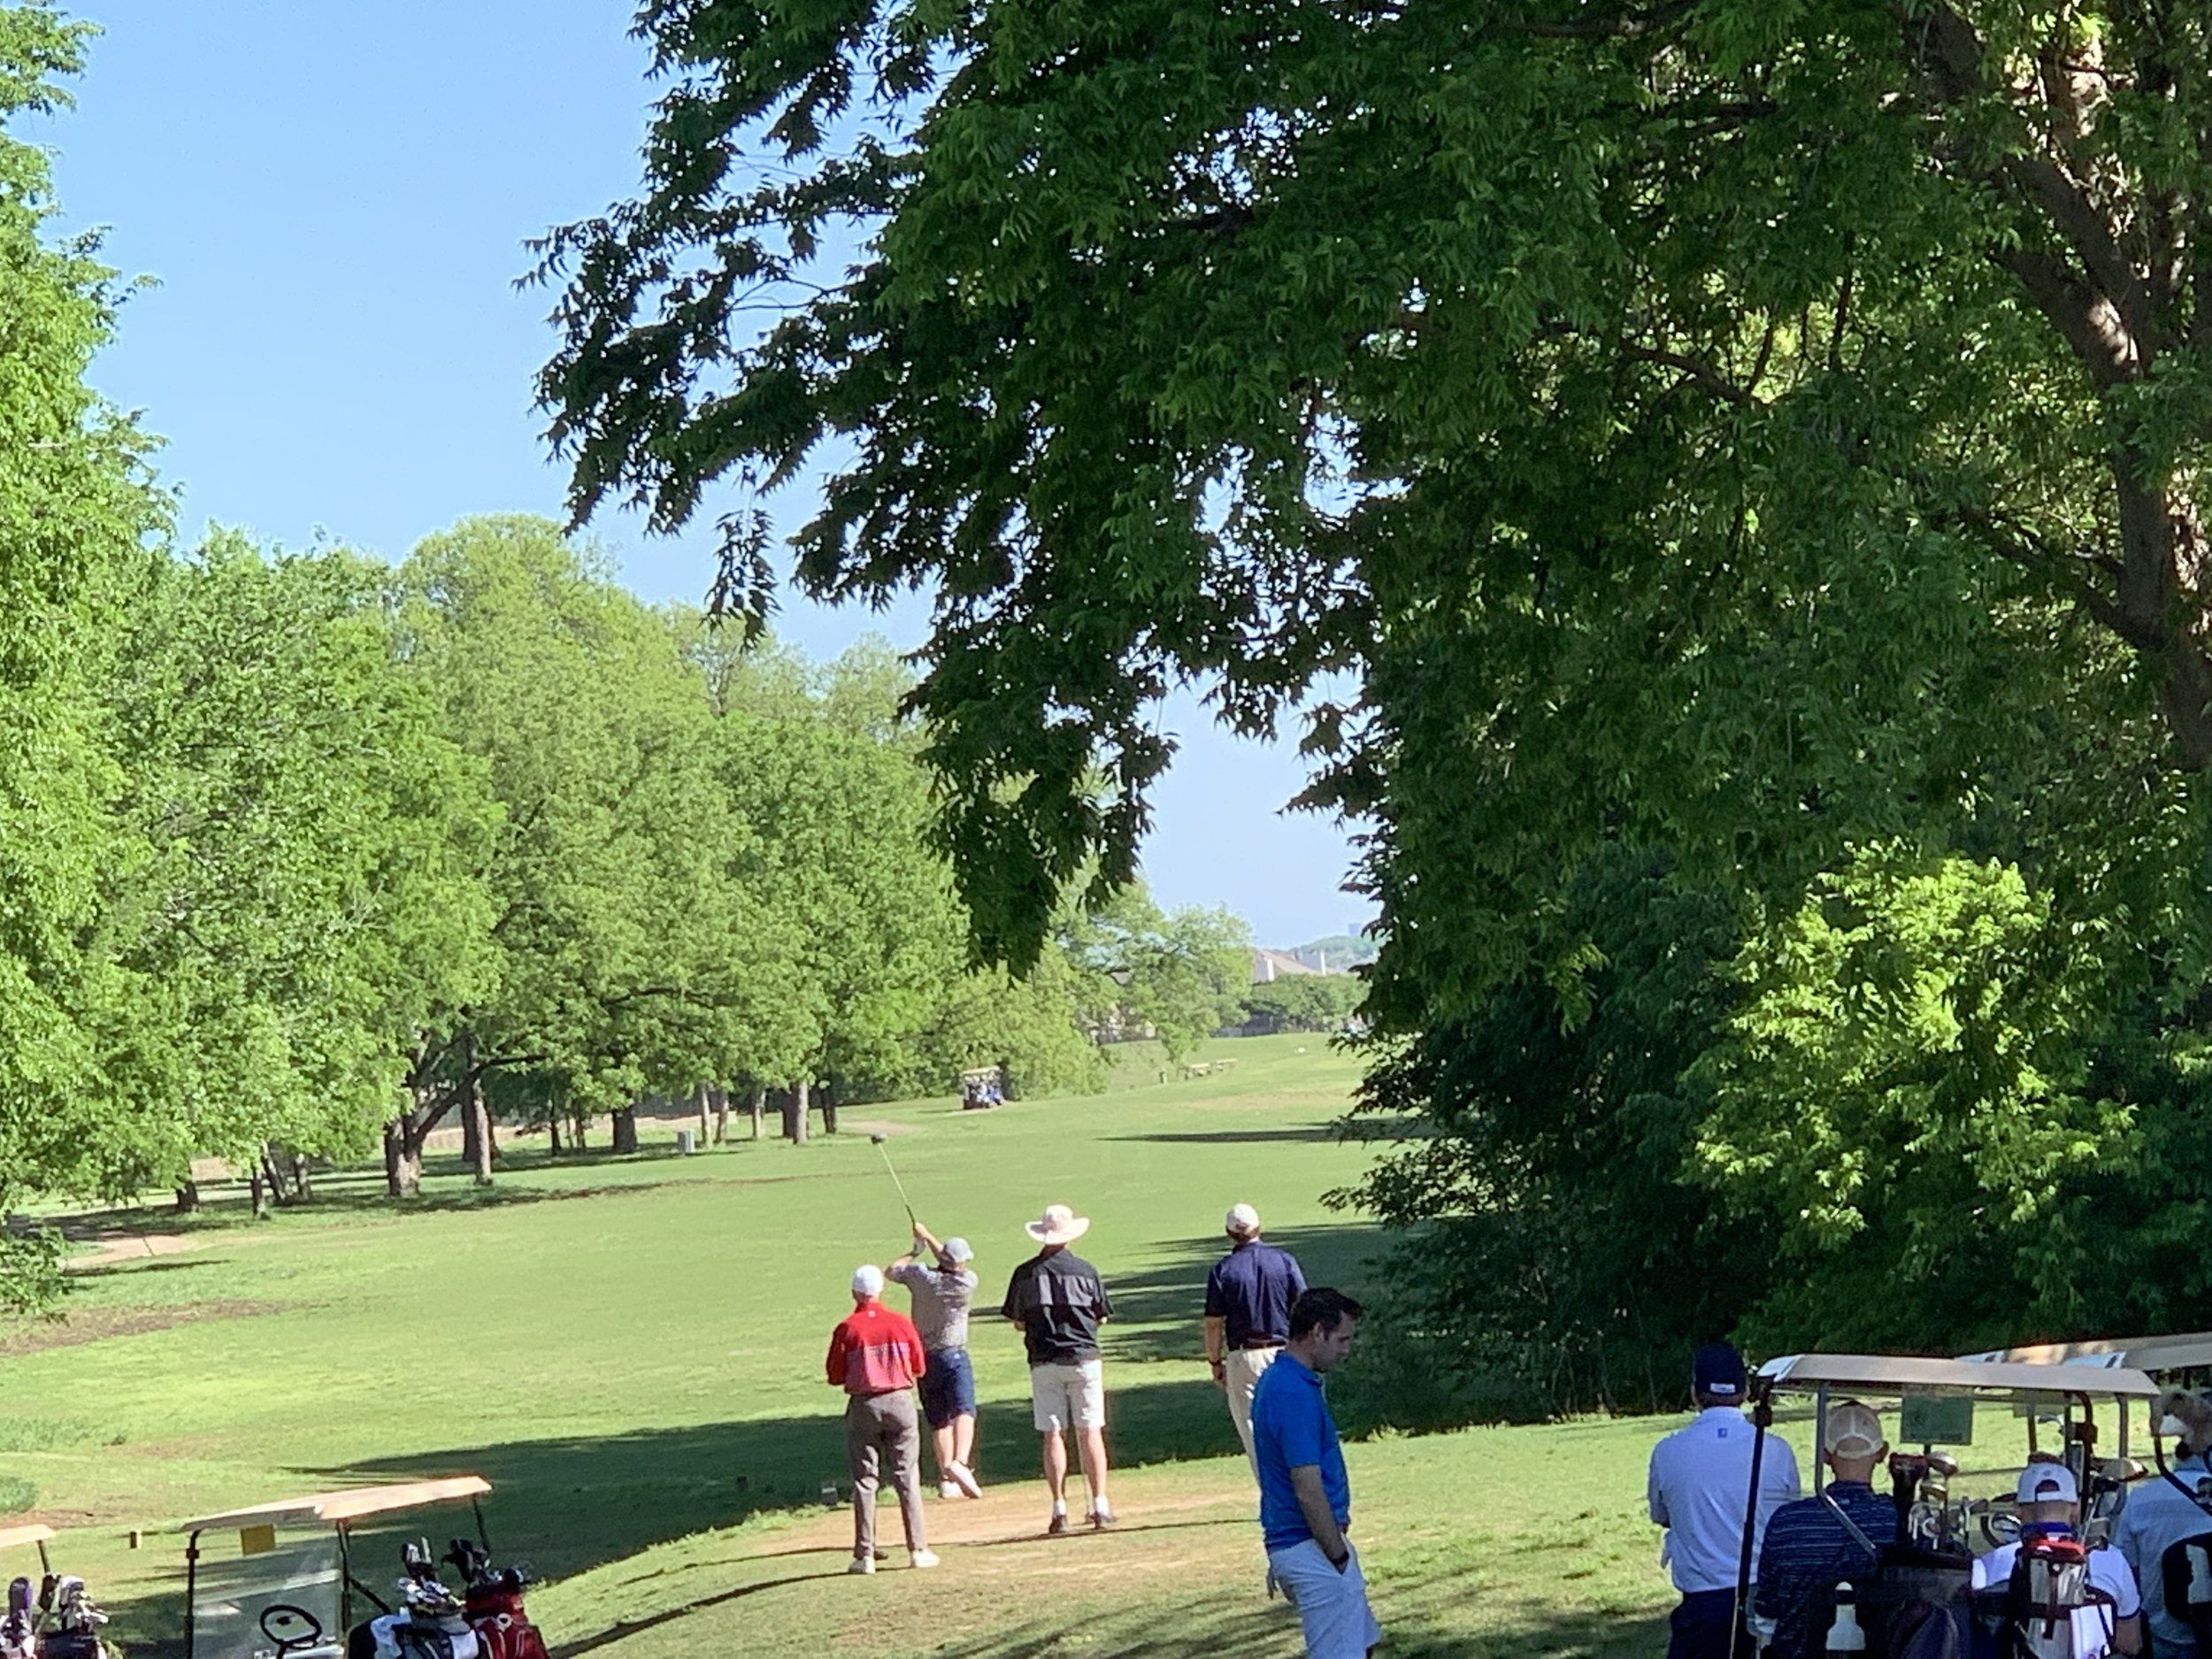 Photo Apr 26, 9 35 18 AM.jpg